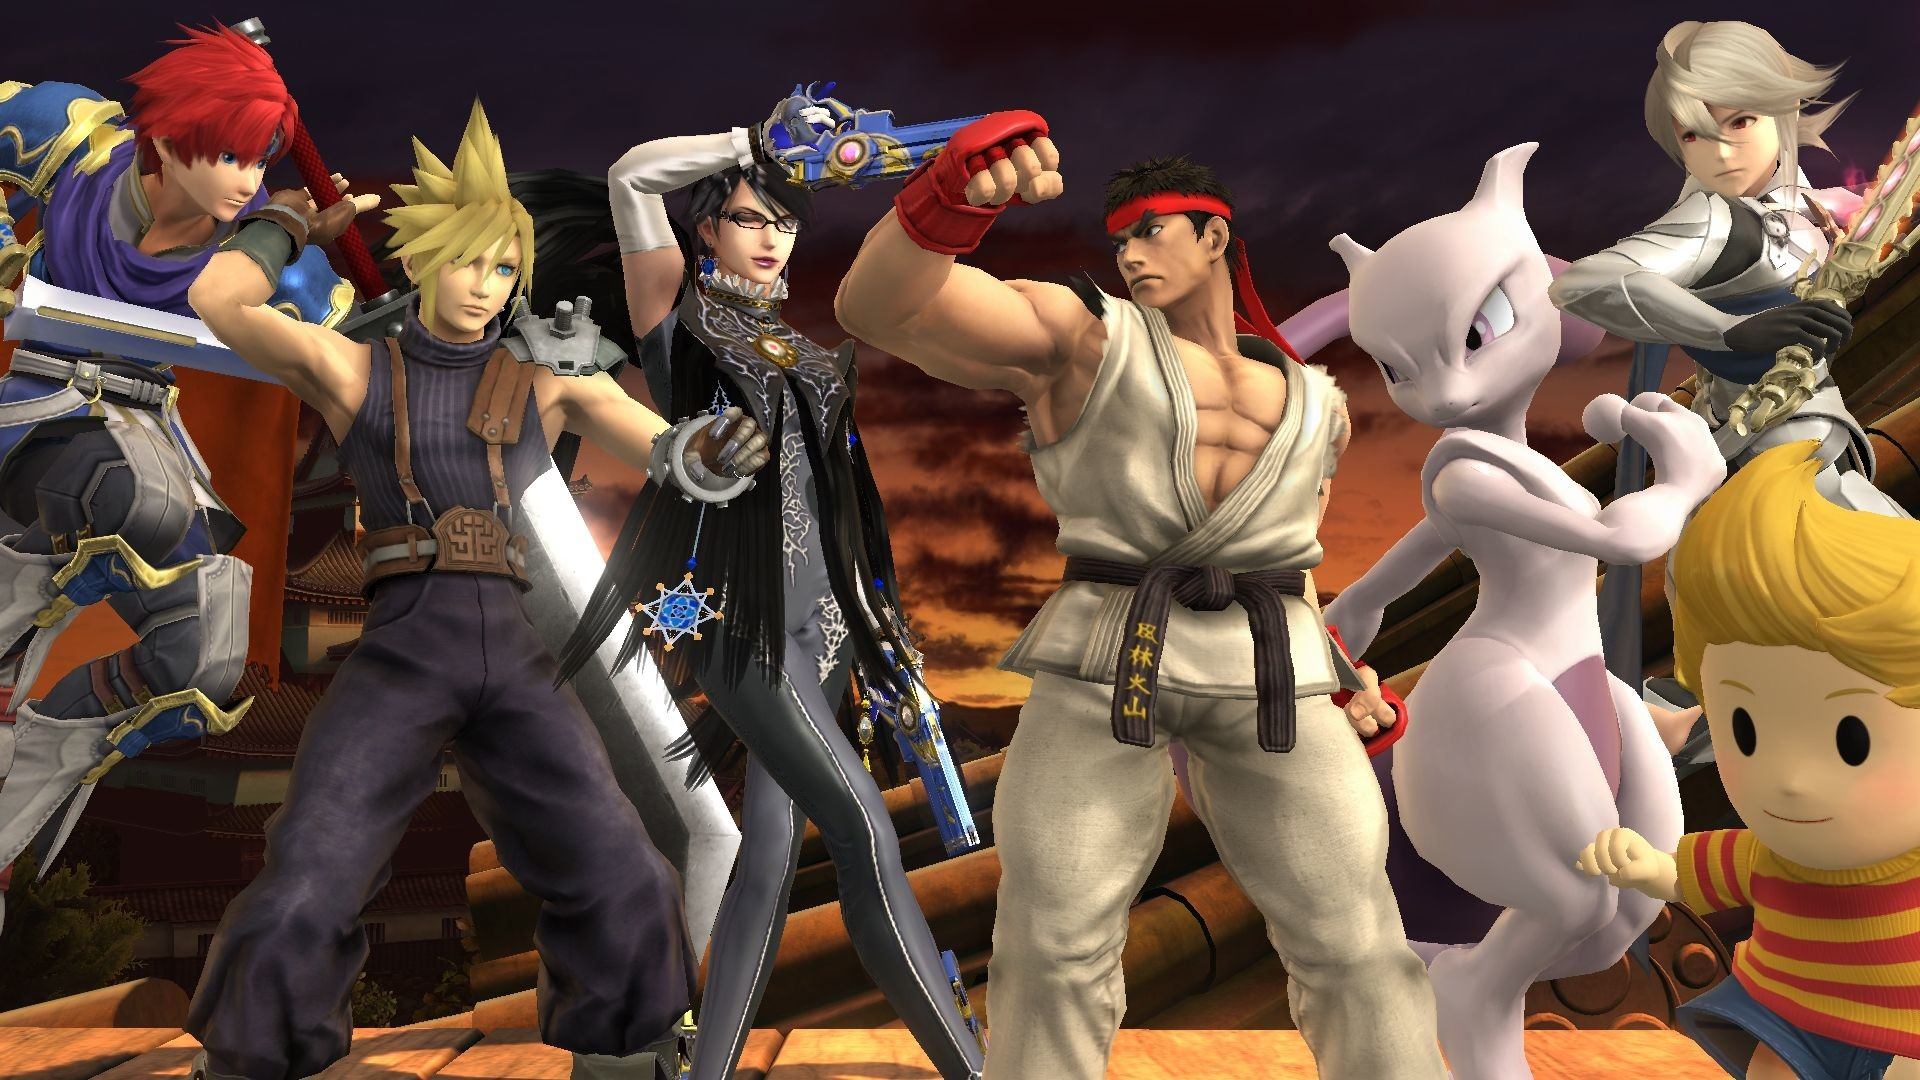 1920x1080 Super Smash Bros. - are the DLC fighters worth the price?